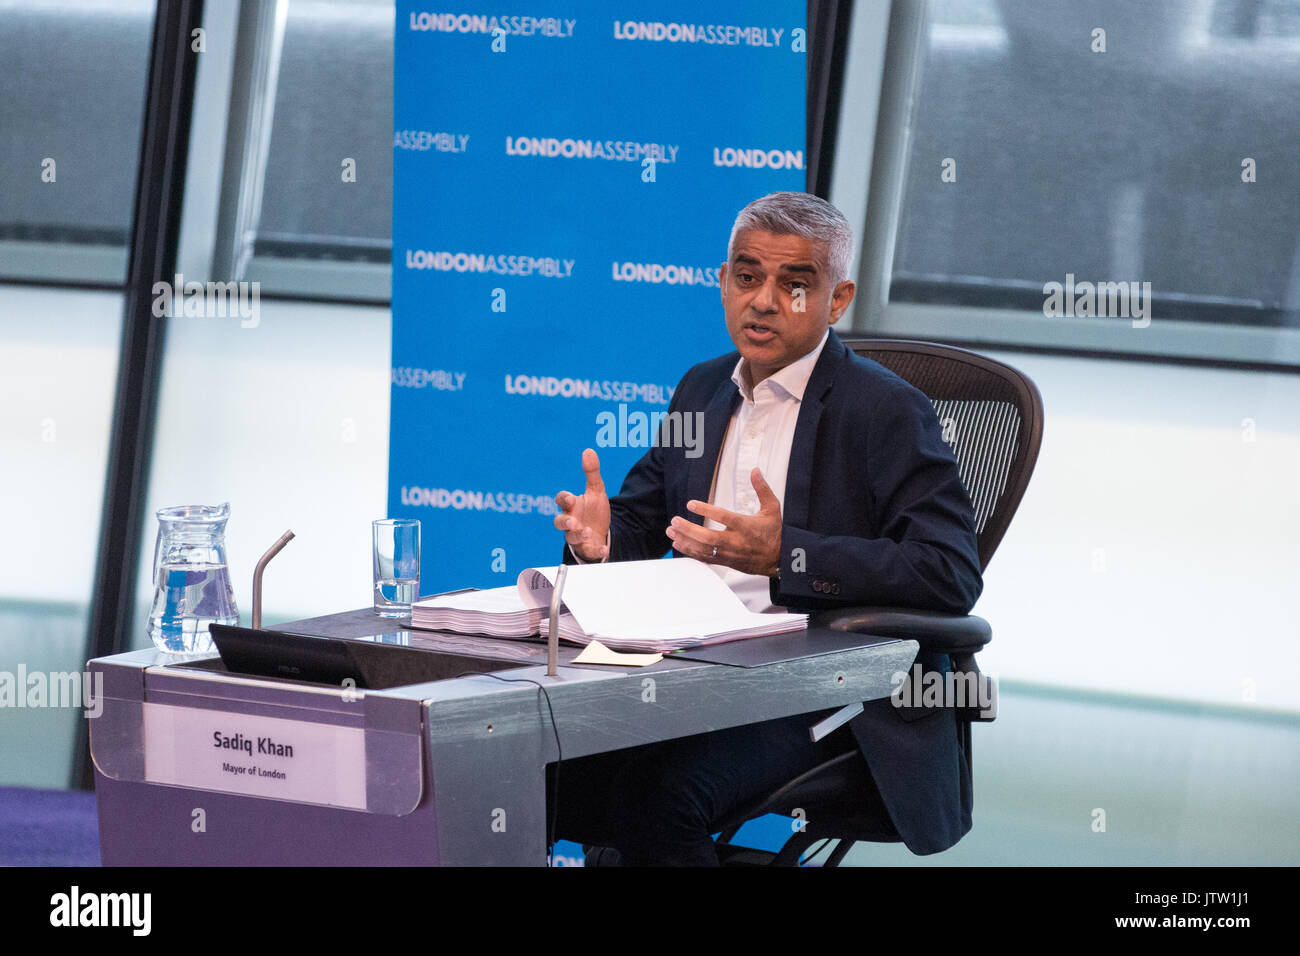 London, UK. 10th August, 2017. Mayor of London Sadiq Khan responds to questions from London Assembly Members during Mayor's Question Time at City Hall. Among topics discussed were: acid attacks, social housing, expenditure on fire and police services, 4G coverage on underground trains and noise from overnight underground trains. Credit: Mark Kerrison/Alamy Live News - Stock Image